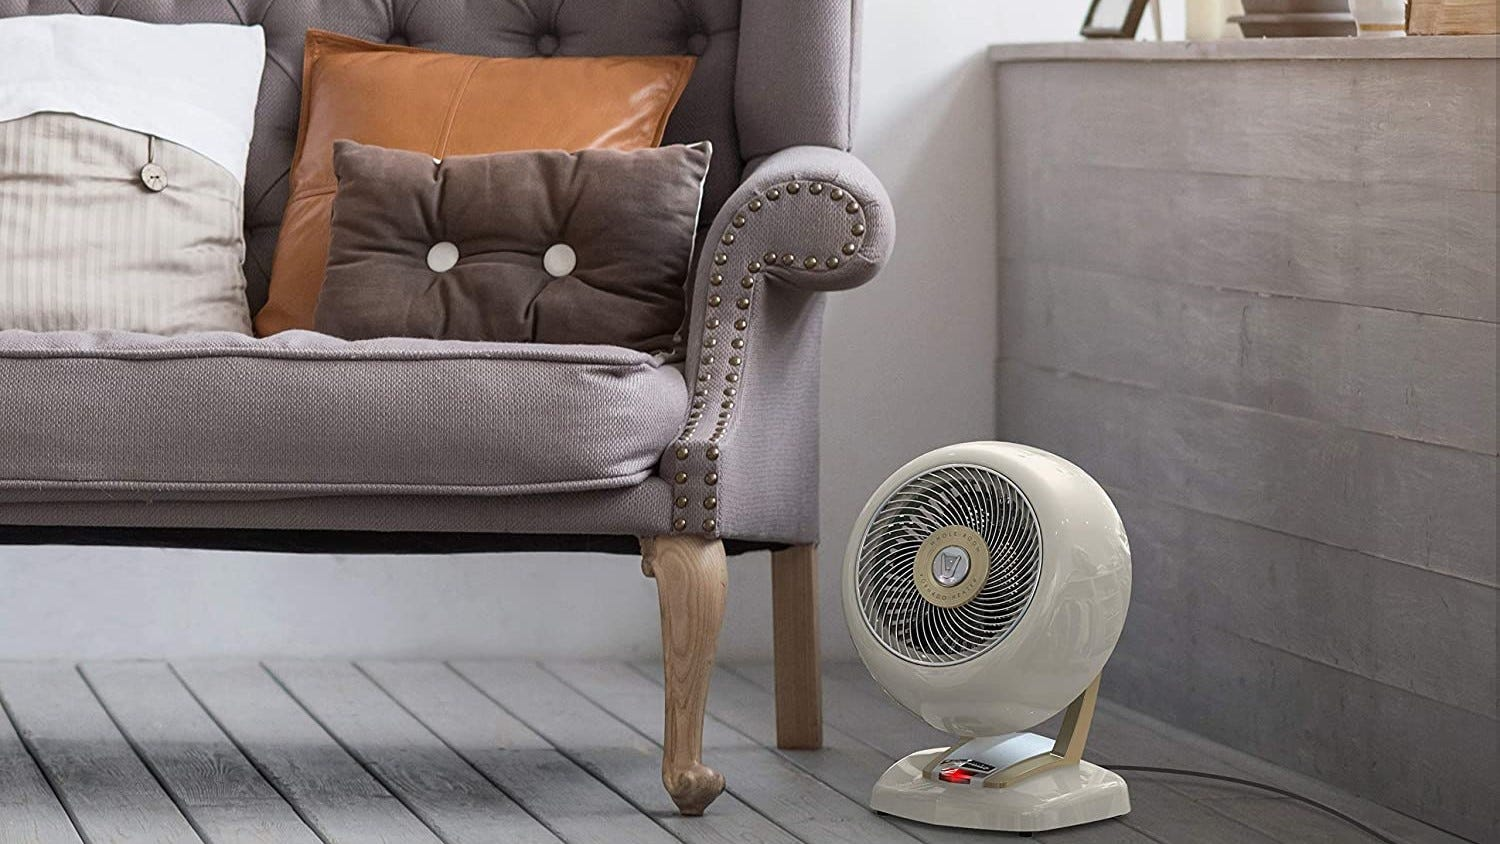 Vornado space heater in a room.